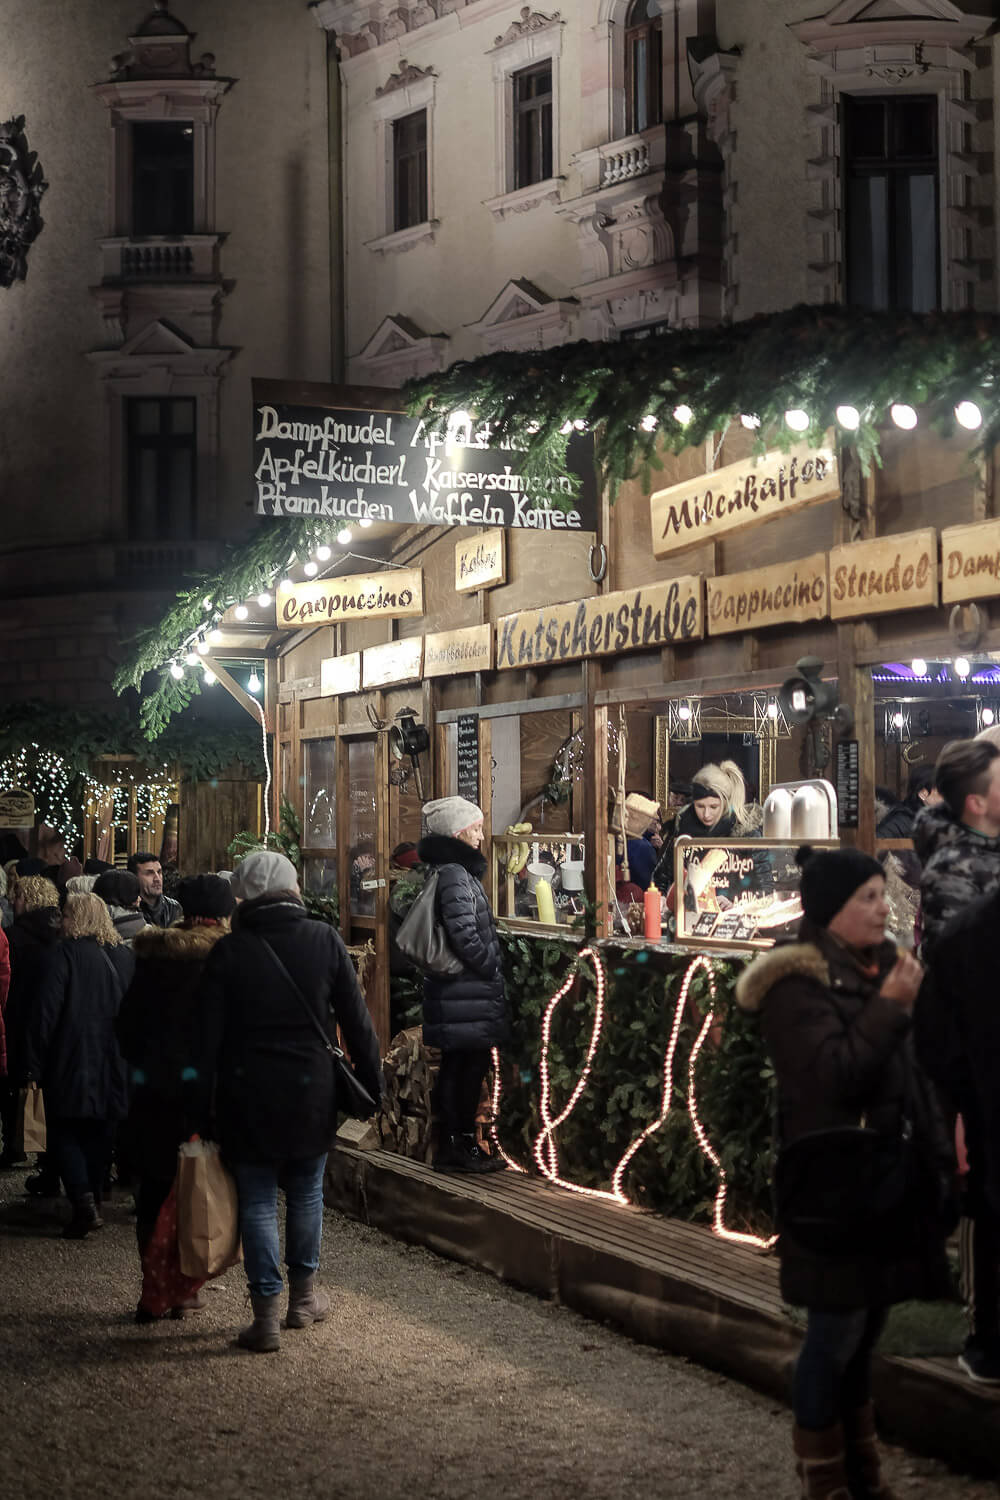 Trip To Germany Costs during December Christmas Markets